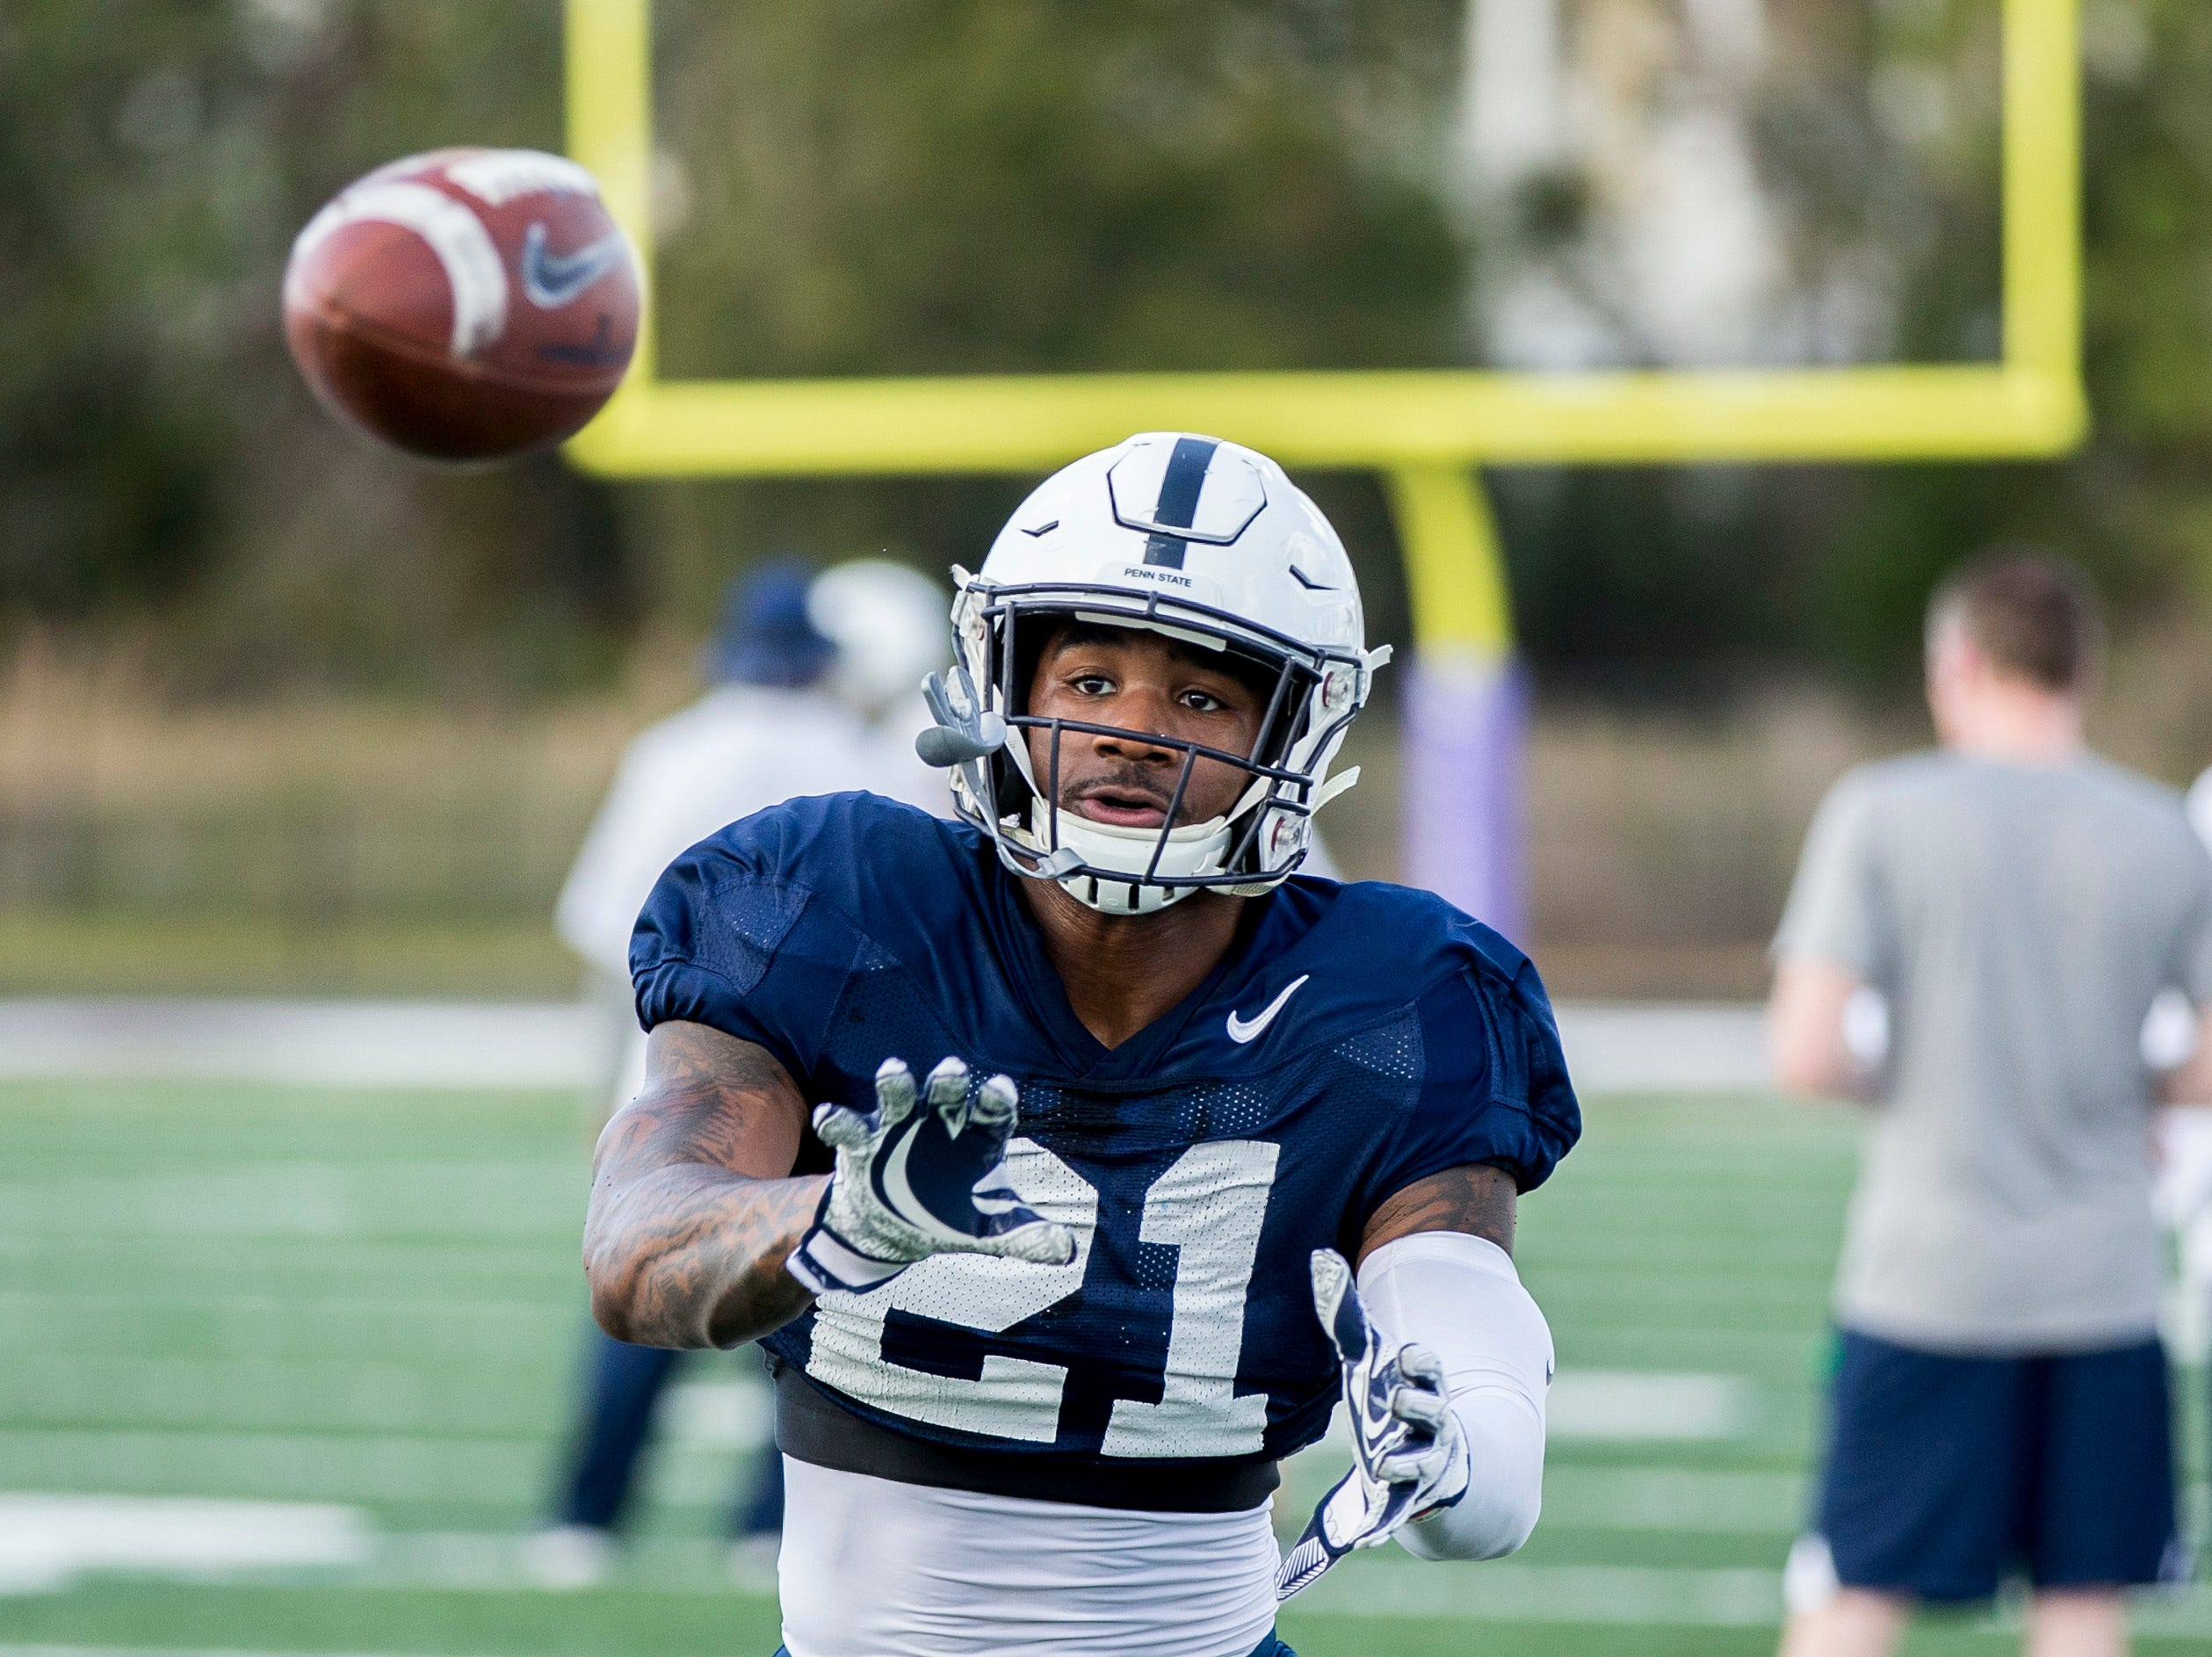 Penn State running back Miles Sanders catches a pass during practice for the Citrus Bowl, Sunday, Dec. 30, 2018 in Orlando, Fla. Penn State plays Kentucky in the Citrus Bowl on Tuesday, Jan. 1, 2019. (Joe Hermitt/The Patriot-News via AP)